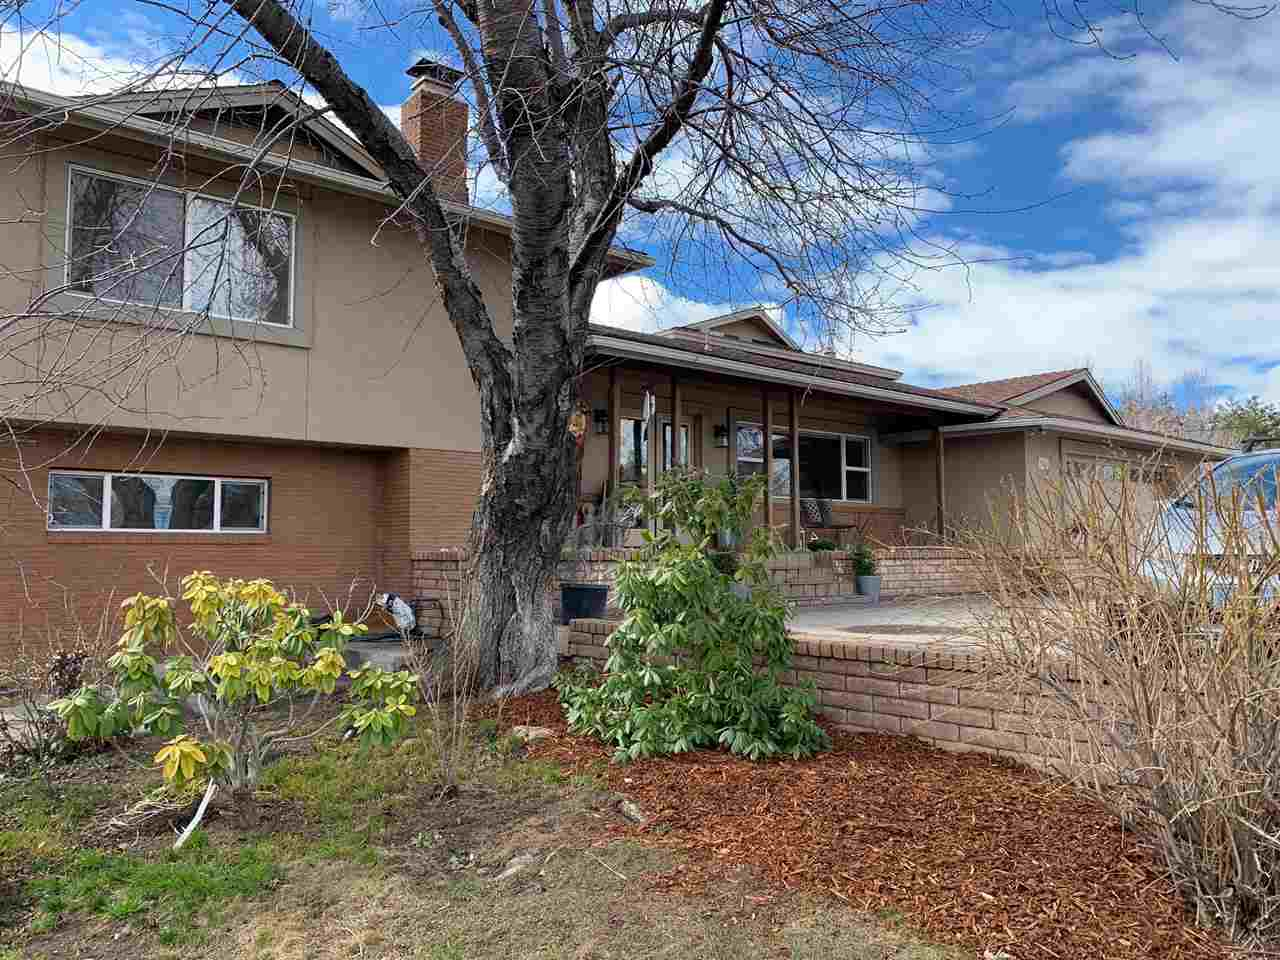 Single Family Home for Active at 5300 Canyon Drive 5300 Canyon Drive Reno, Nevada 89519 United States